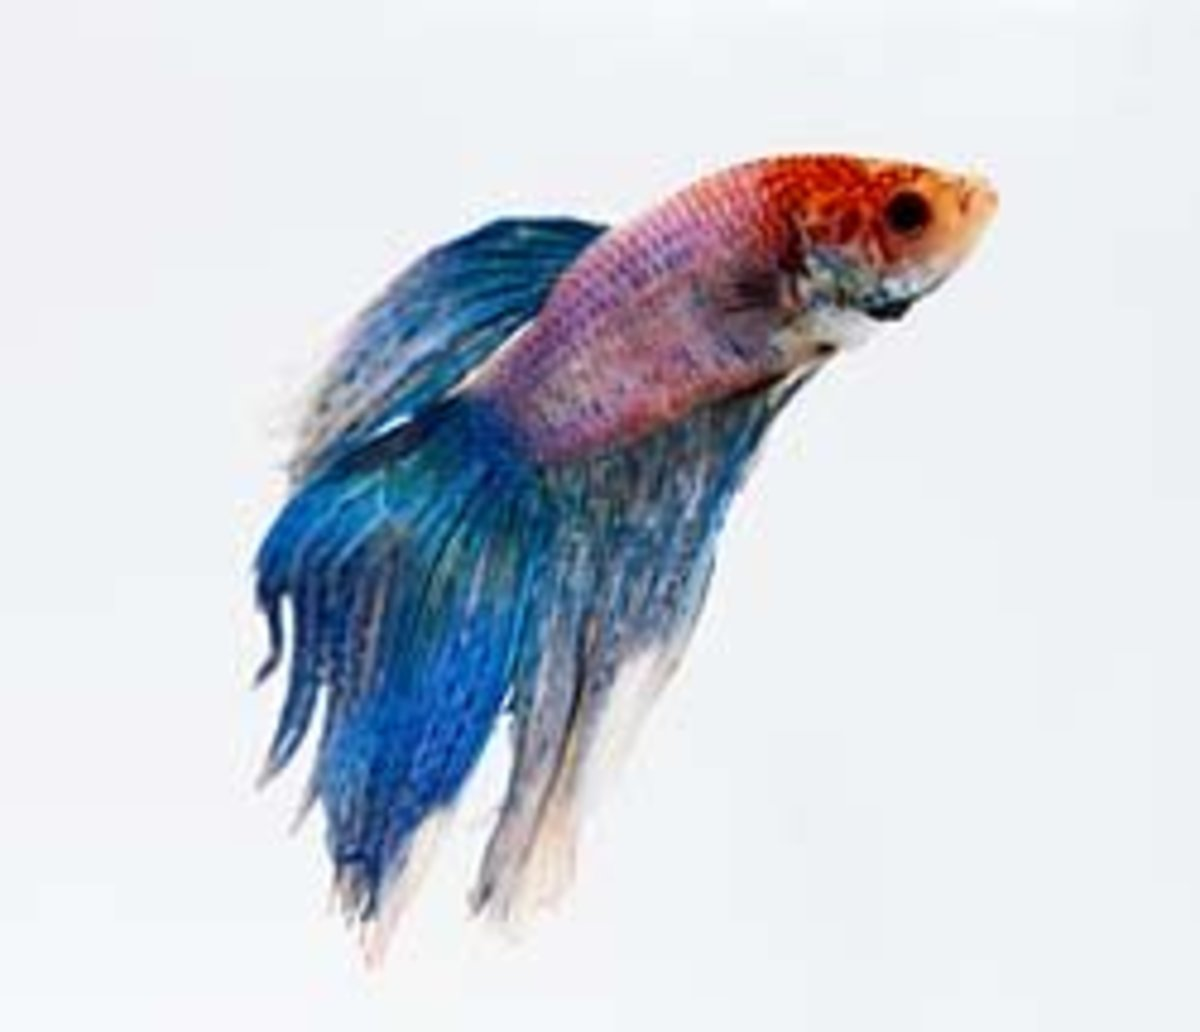 Some fish are mostly idiot proof, like the Betta